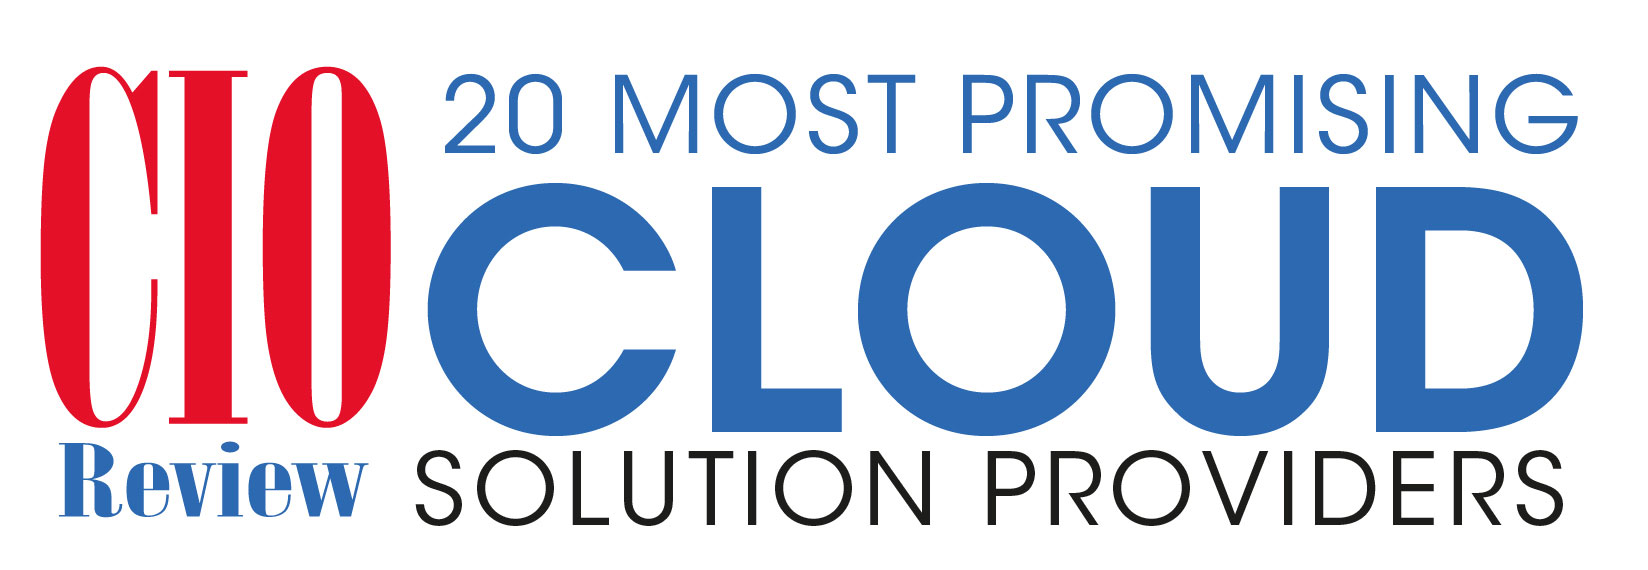 Top Cloud Technology Solution Companies